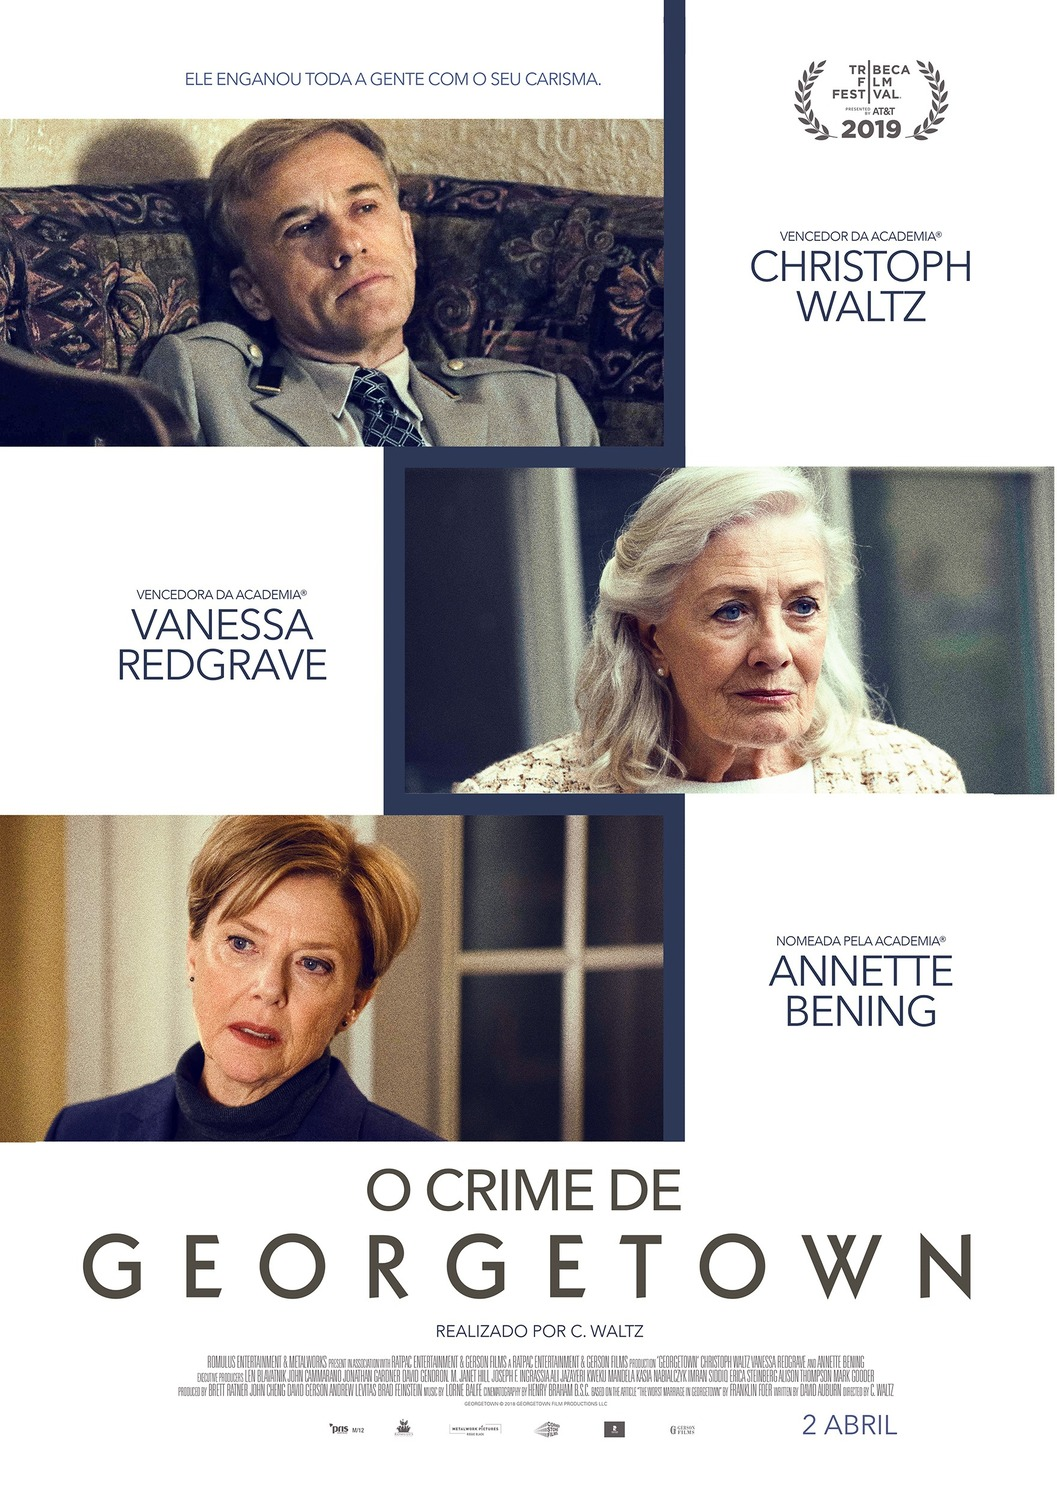 Trailer for Christoph Waltz's Directorial Debut Georgetown